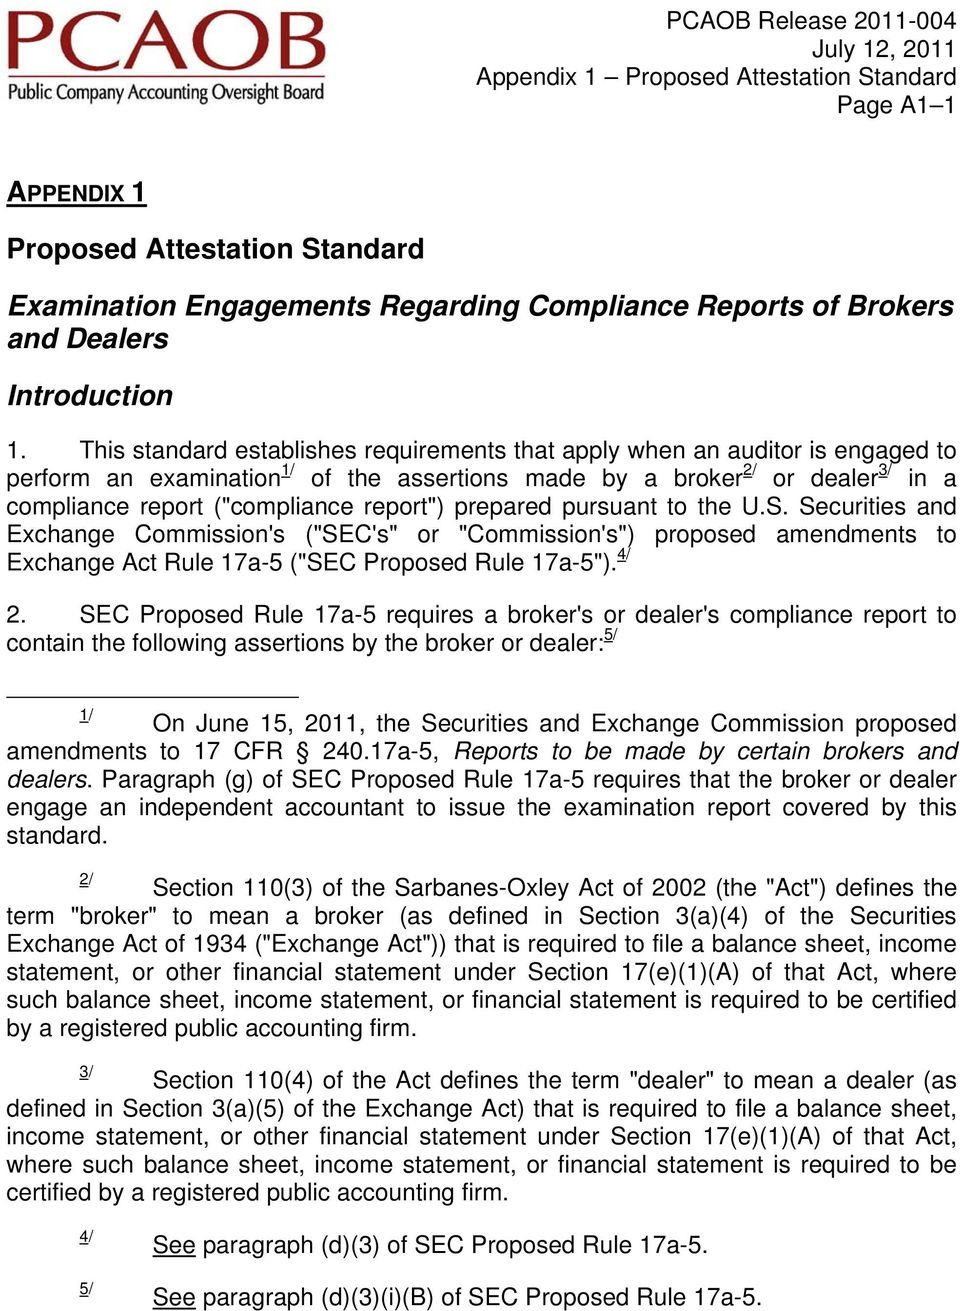 "report"") prepared pursuant to the U.S. Securities and Exchange Commission's (""SEC's"" or ""Commission's"") proposed amendments to Exchange Act Rule 17a-5 (""SEC Proposed Rule 17a-5""). 4/ 2."